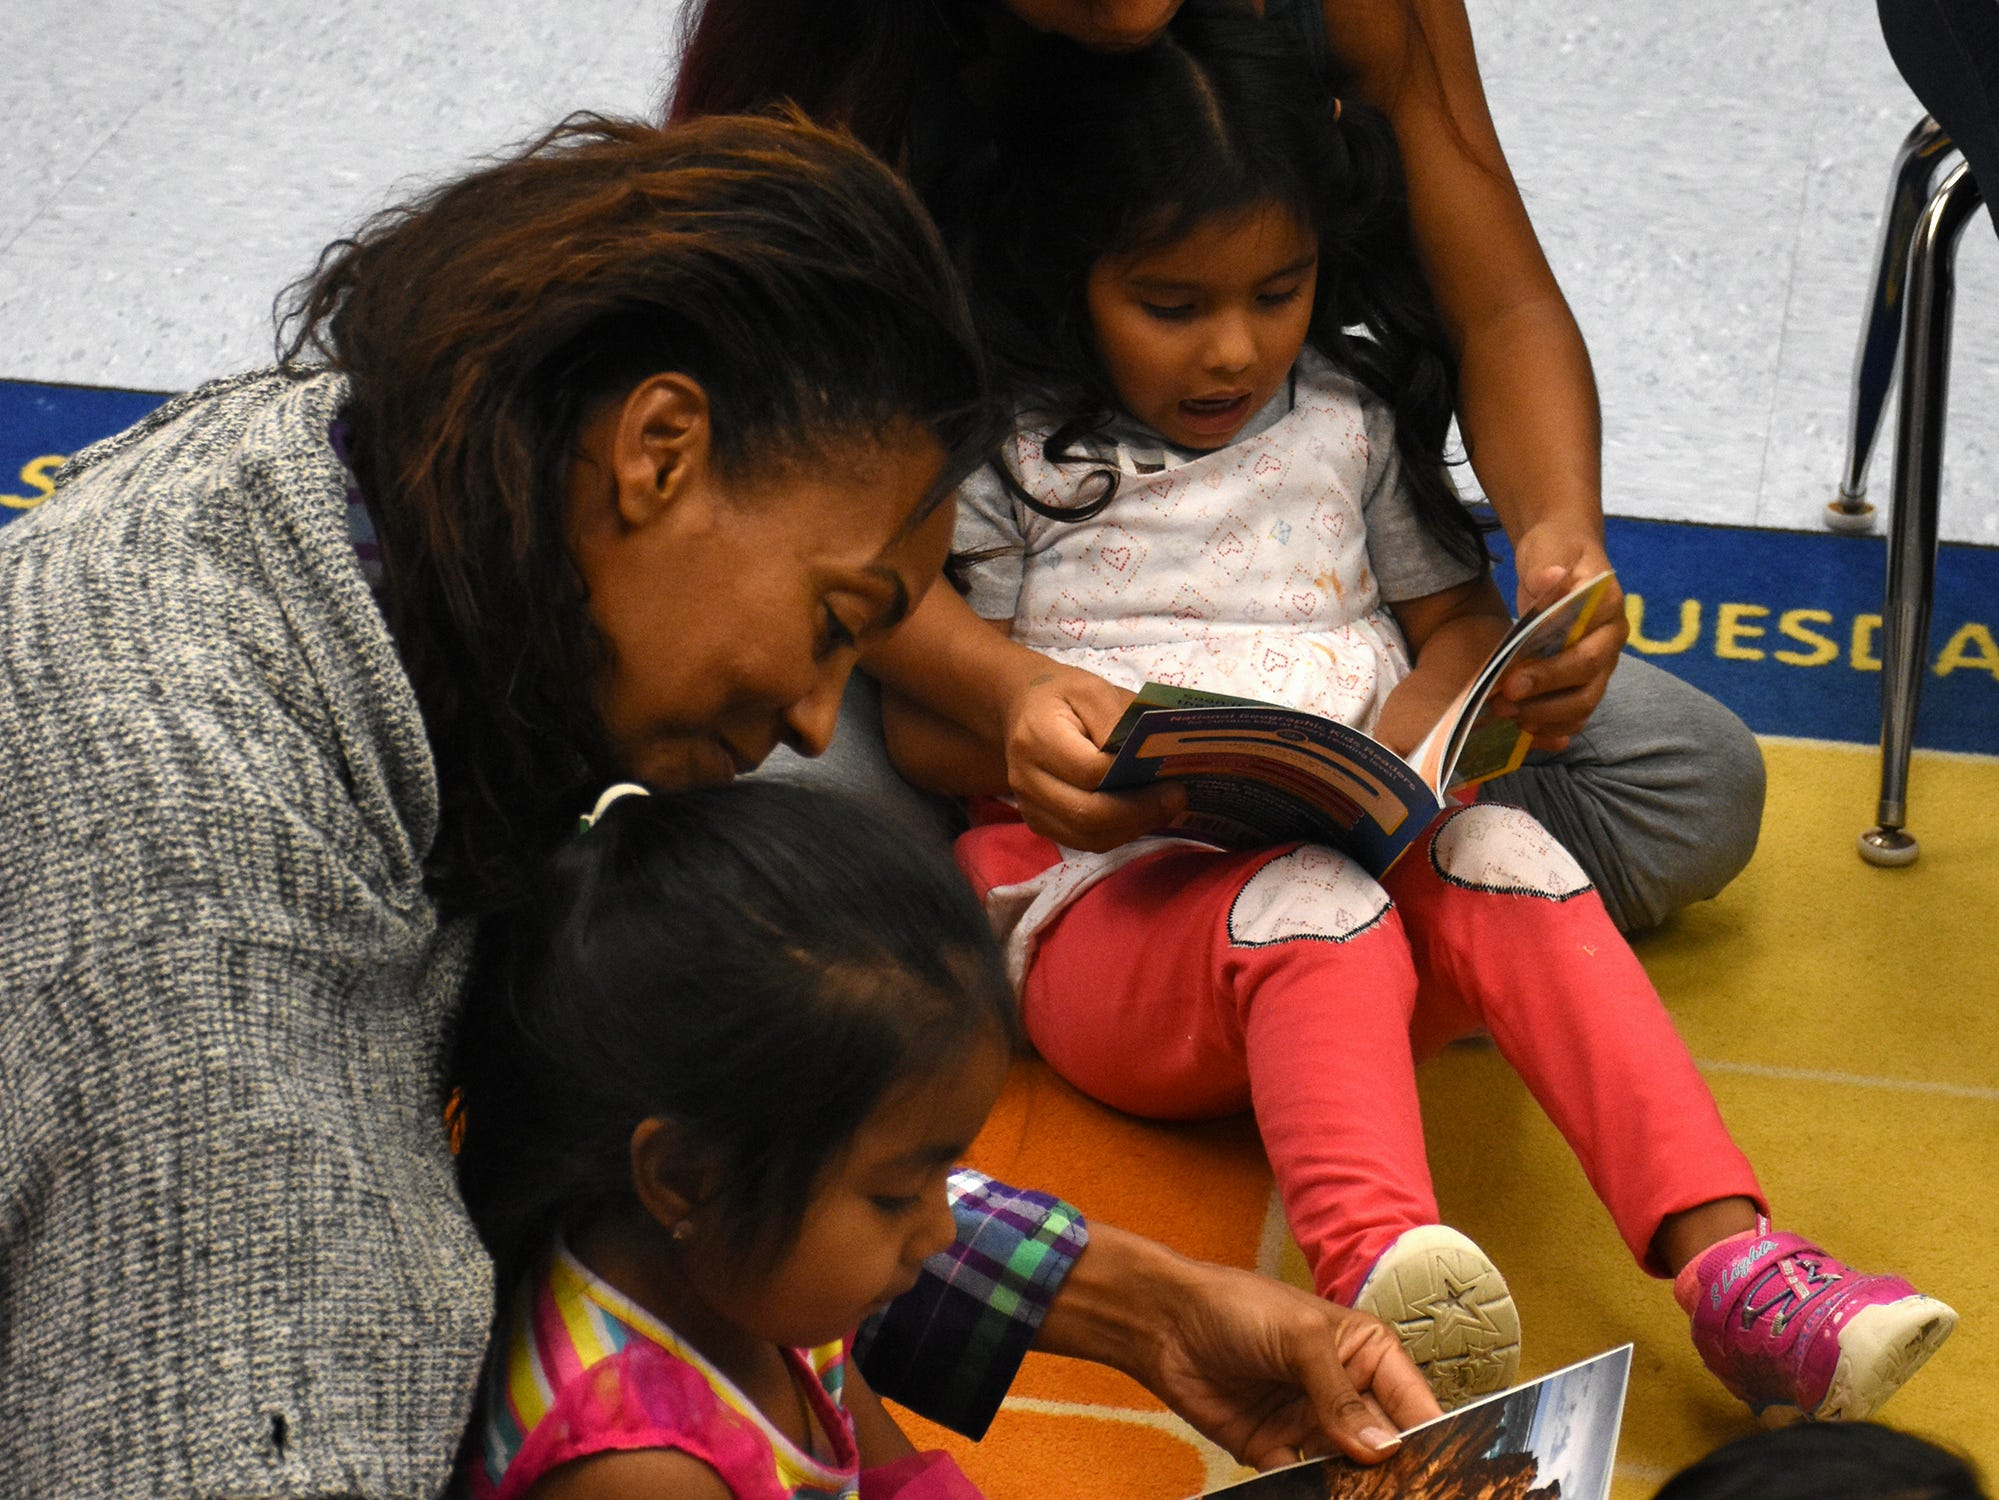 """Volunteers and mothers read with students from """"At the Beach,"""" caught up in the words and pictures. Volunteers conduct """"Children and Parents Reading Together"""" programs with pre-K students in elementary schools through the Literacy Volunteers of Collier County."""